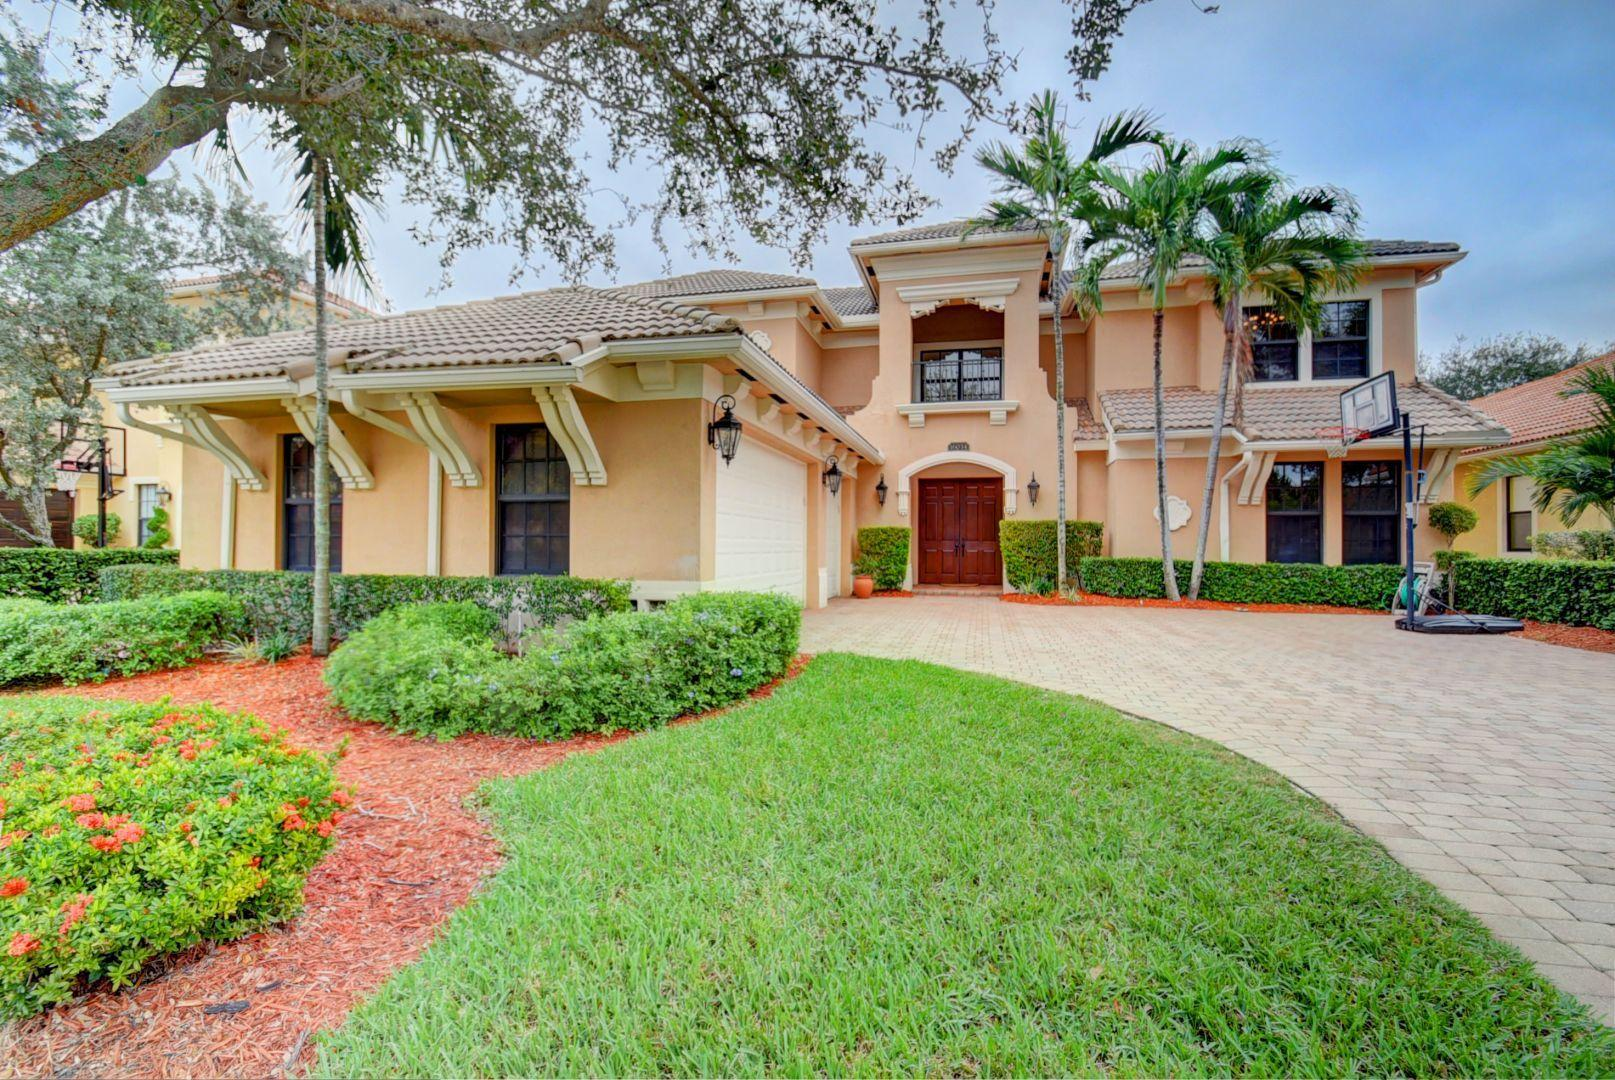 16034 Rosecroft Terrace, Delray Beach, Florida 33446, 6 Bedrooms Bedrooms, ,4.1 BathroomsBathrooms,Single Family,For Sale,CASA BELLA,Rosecroft,RX-10499730